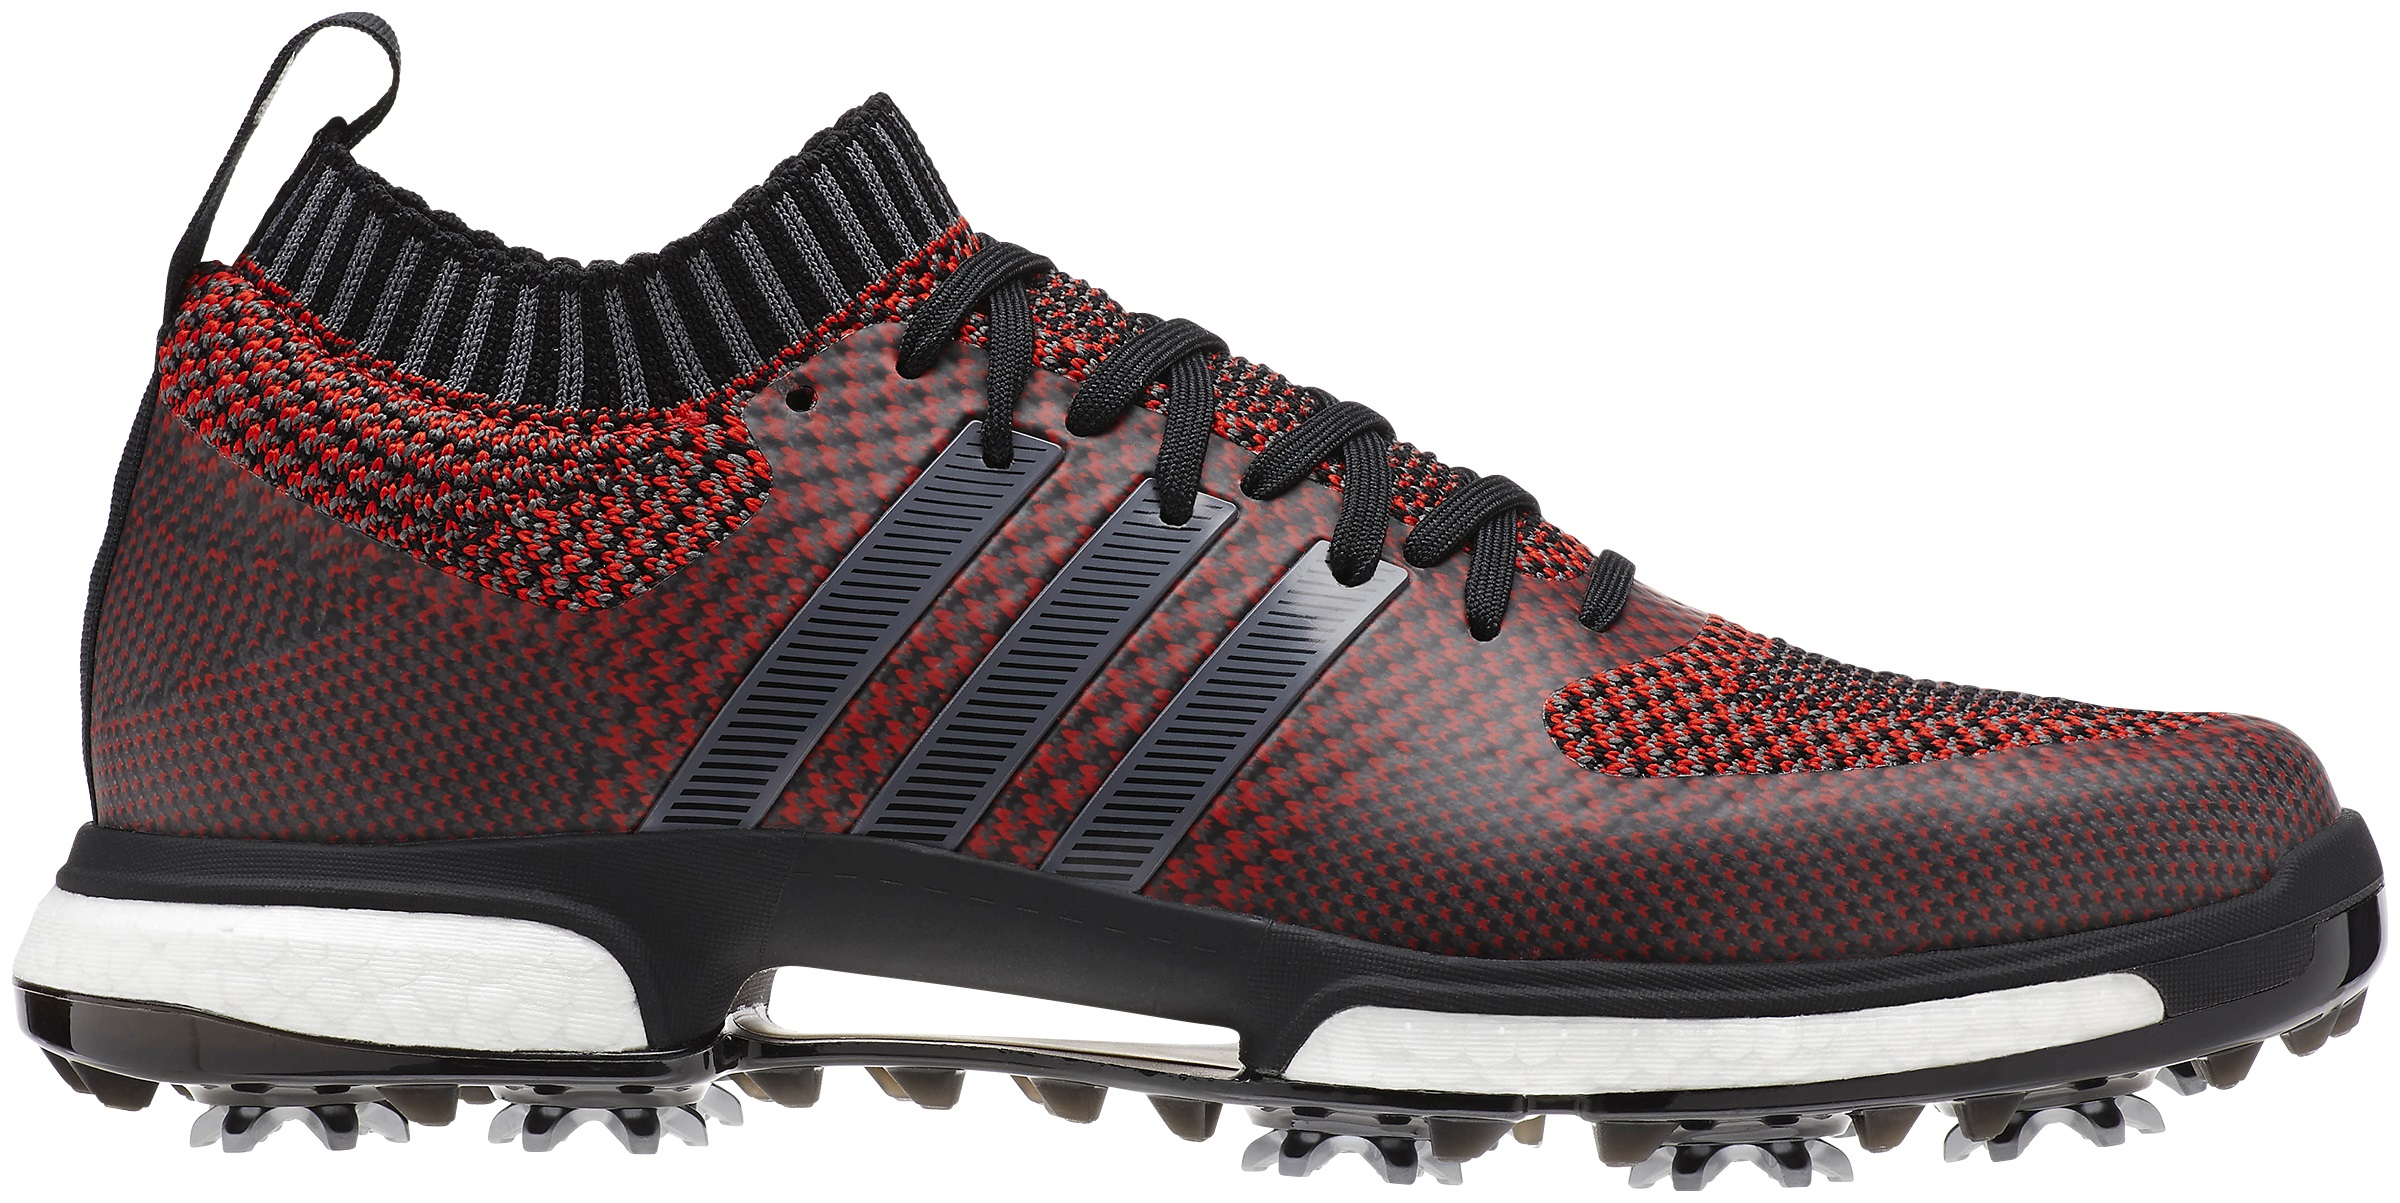 save off 613c1 0e6cd Adidas Golf- Tour360 Knit Shoes (Closeout)